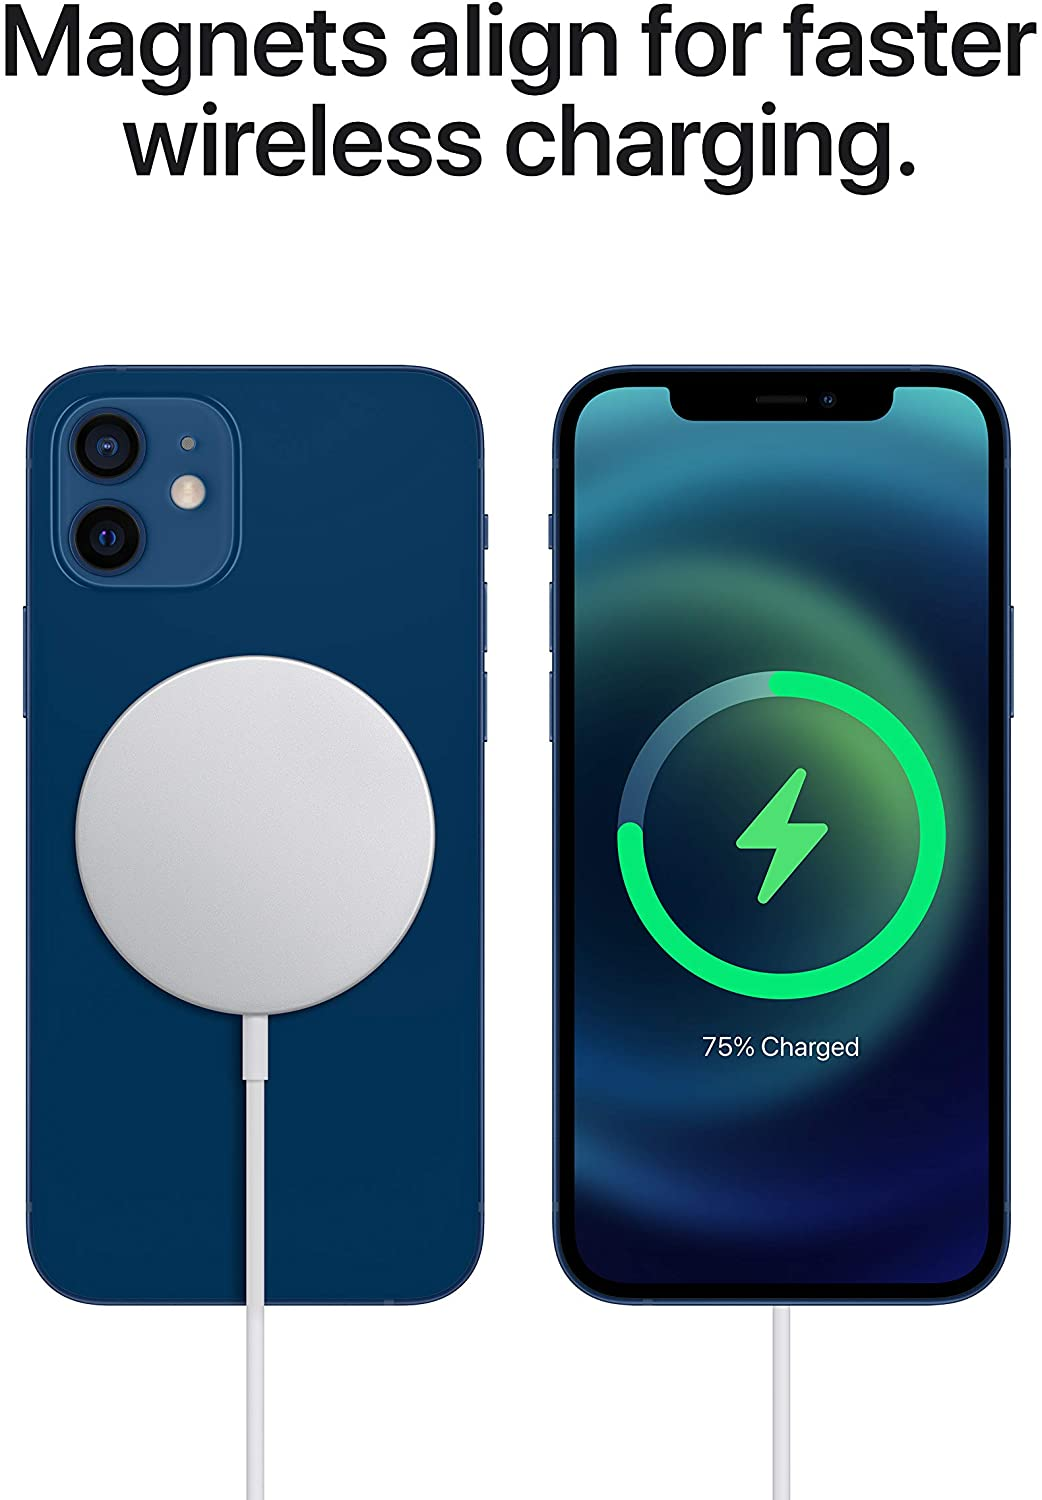 Chargeur magsafe iphone12 chargement rapide